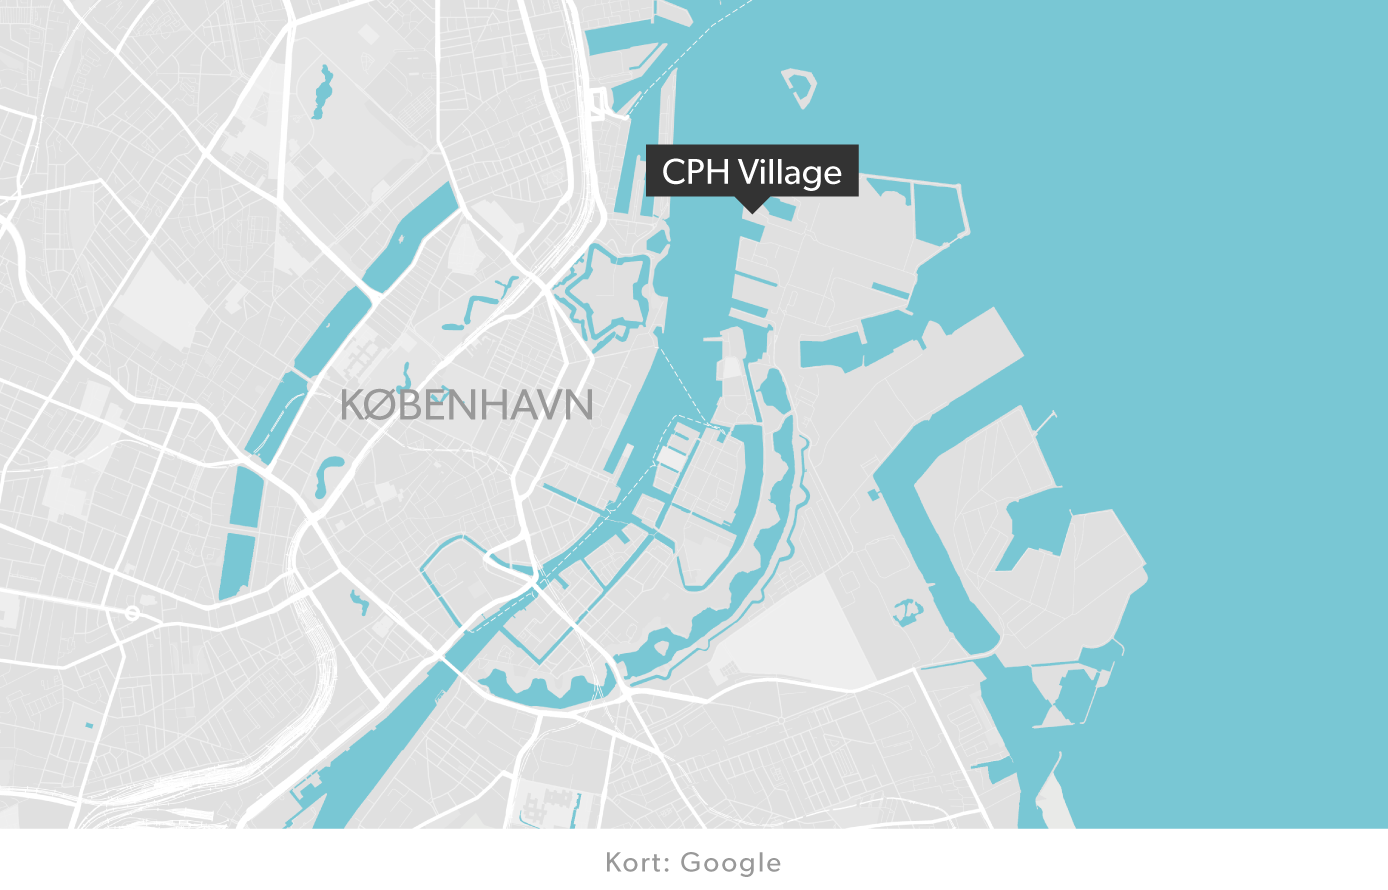 cph-village.png